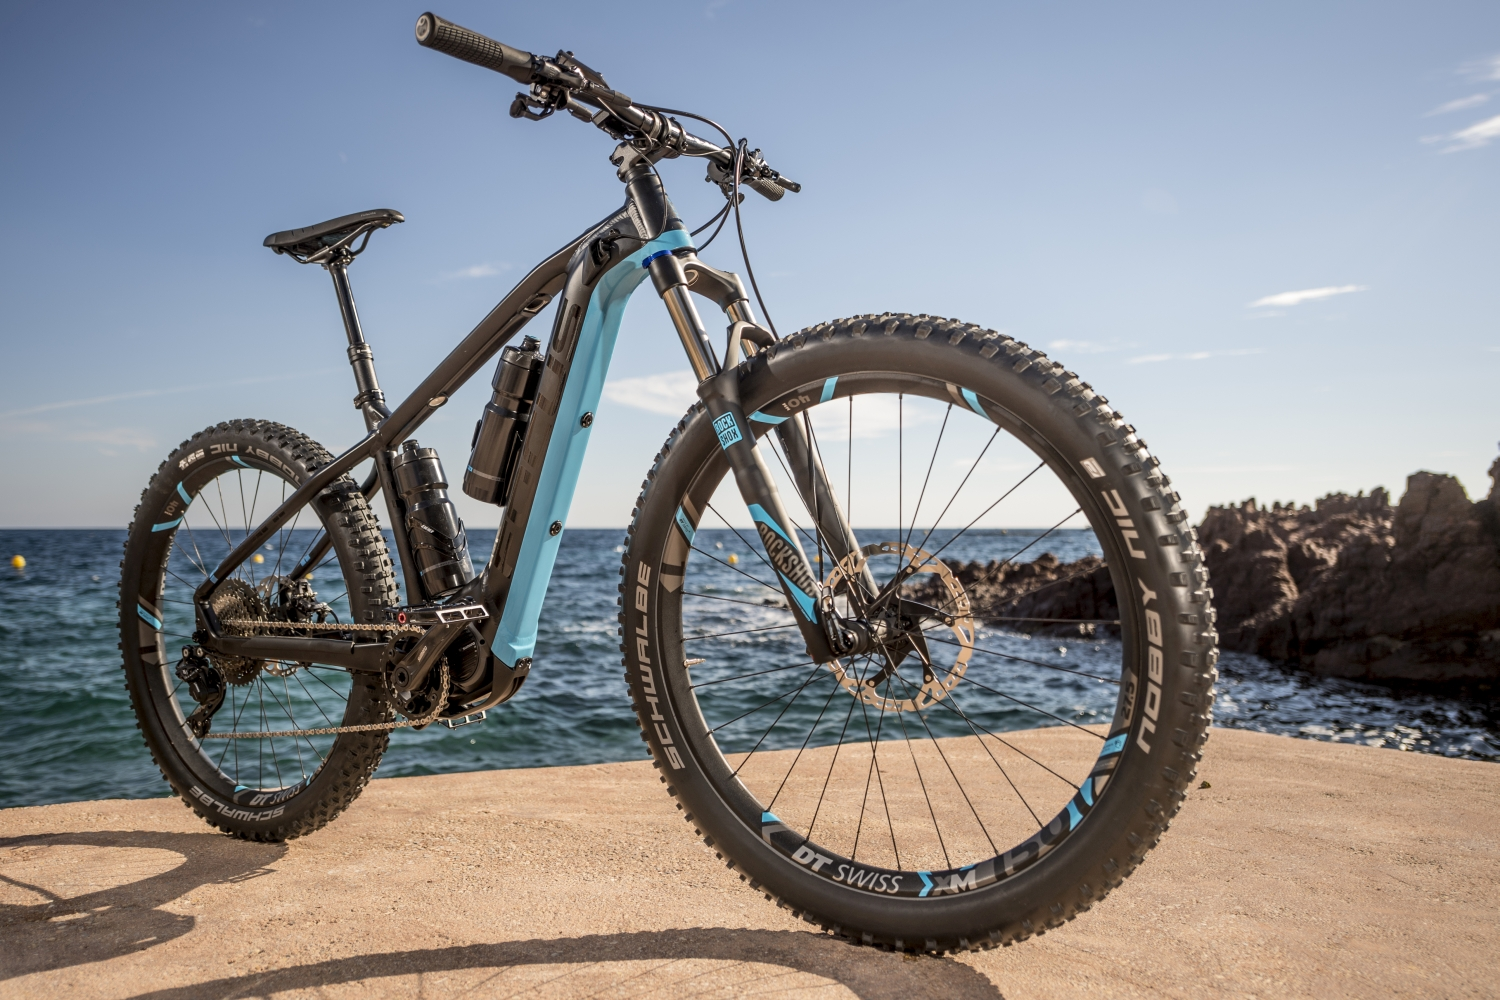 mb-focus-jam-2-e-mountainbike-2017-1.jpg